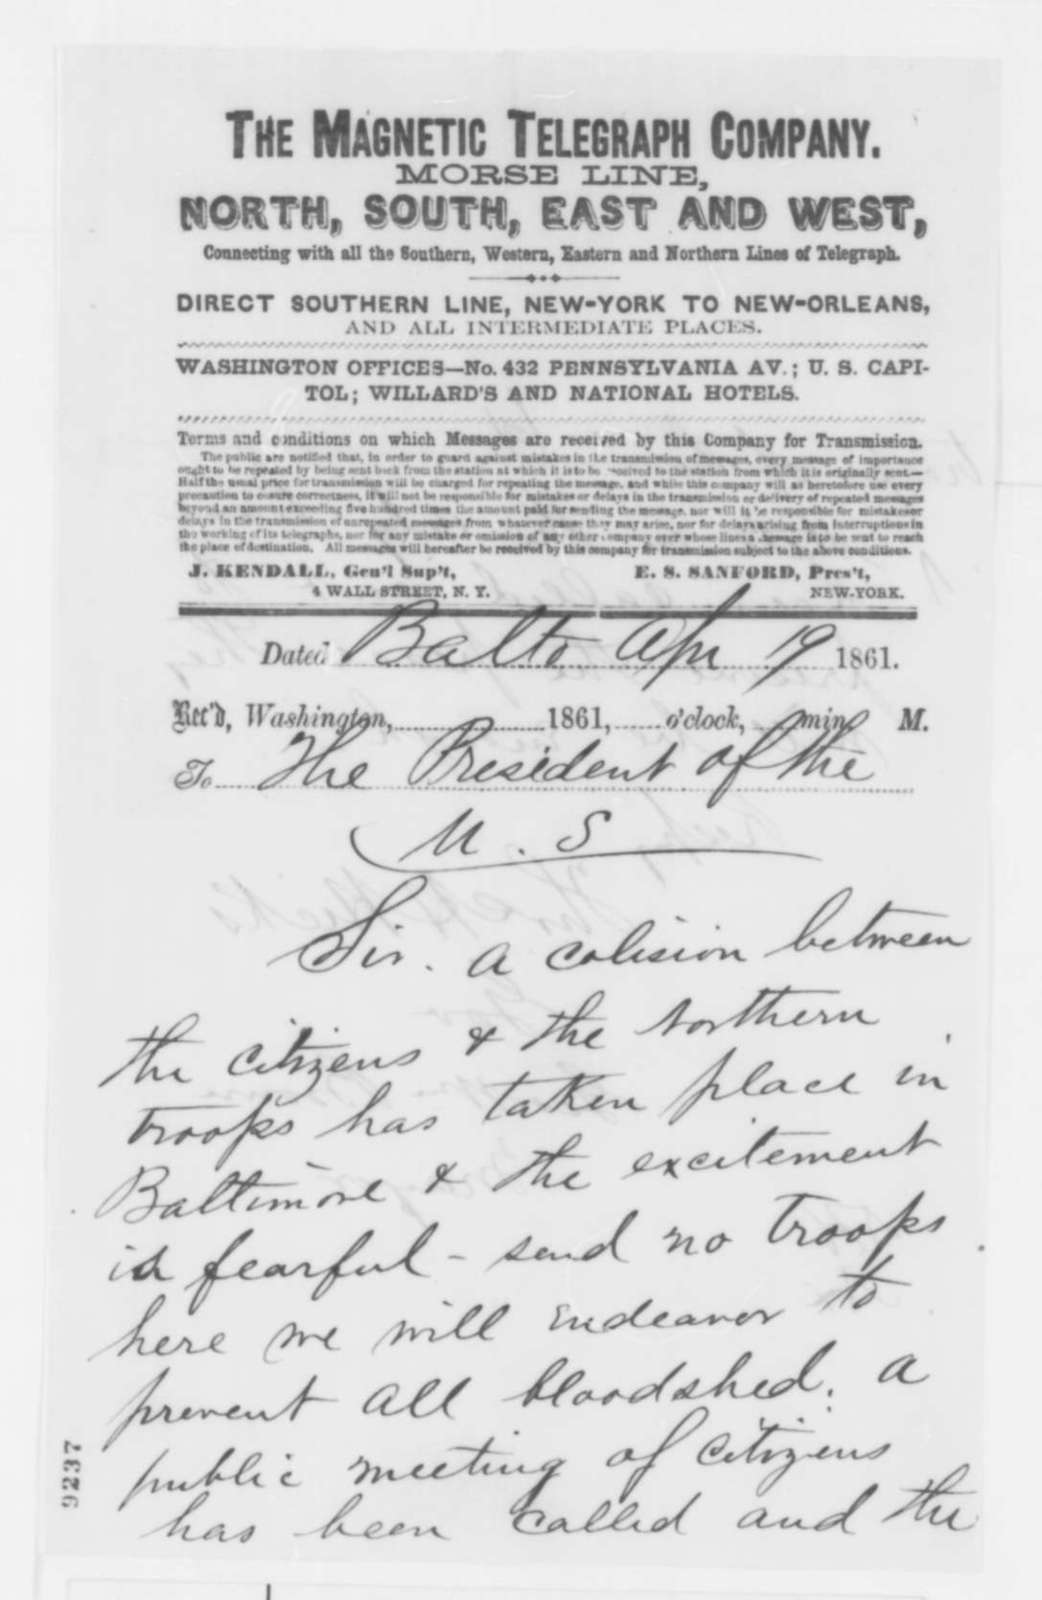 George W. Brown and Thomas H. Hicks to Abraham Lincoln, Friday, April 19, 1861  (Telegram reporting conflict between citizens of Baltimore and soldiers)